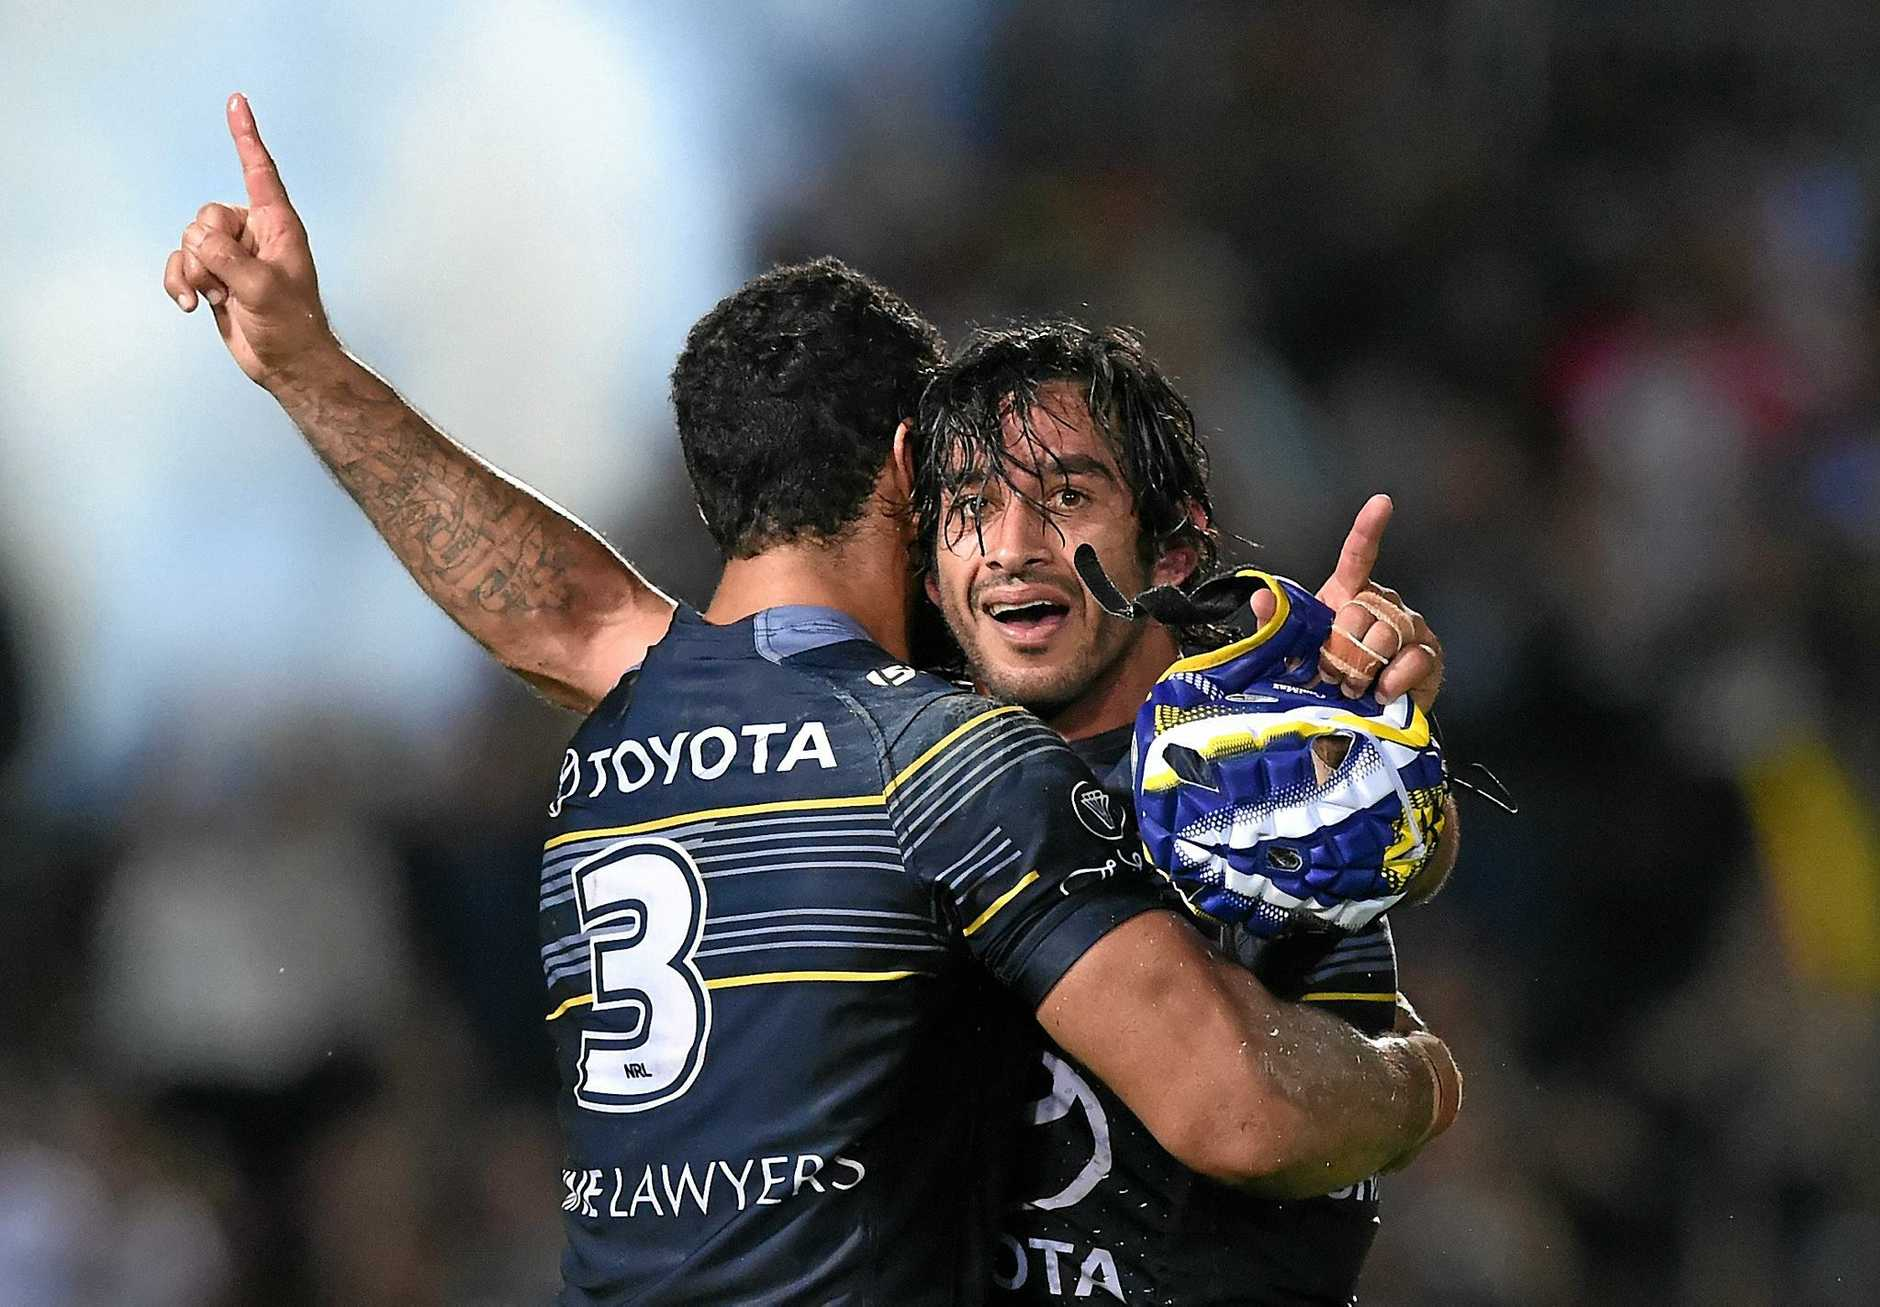 Cowboys captain Jonathan Thurston reacts after the NRL semi-final match between the North Queensland Cowboys and the Brisbane Broncos